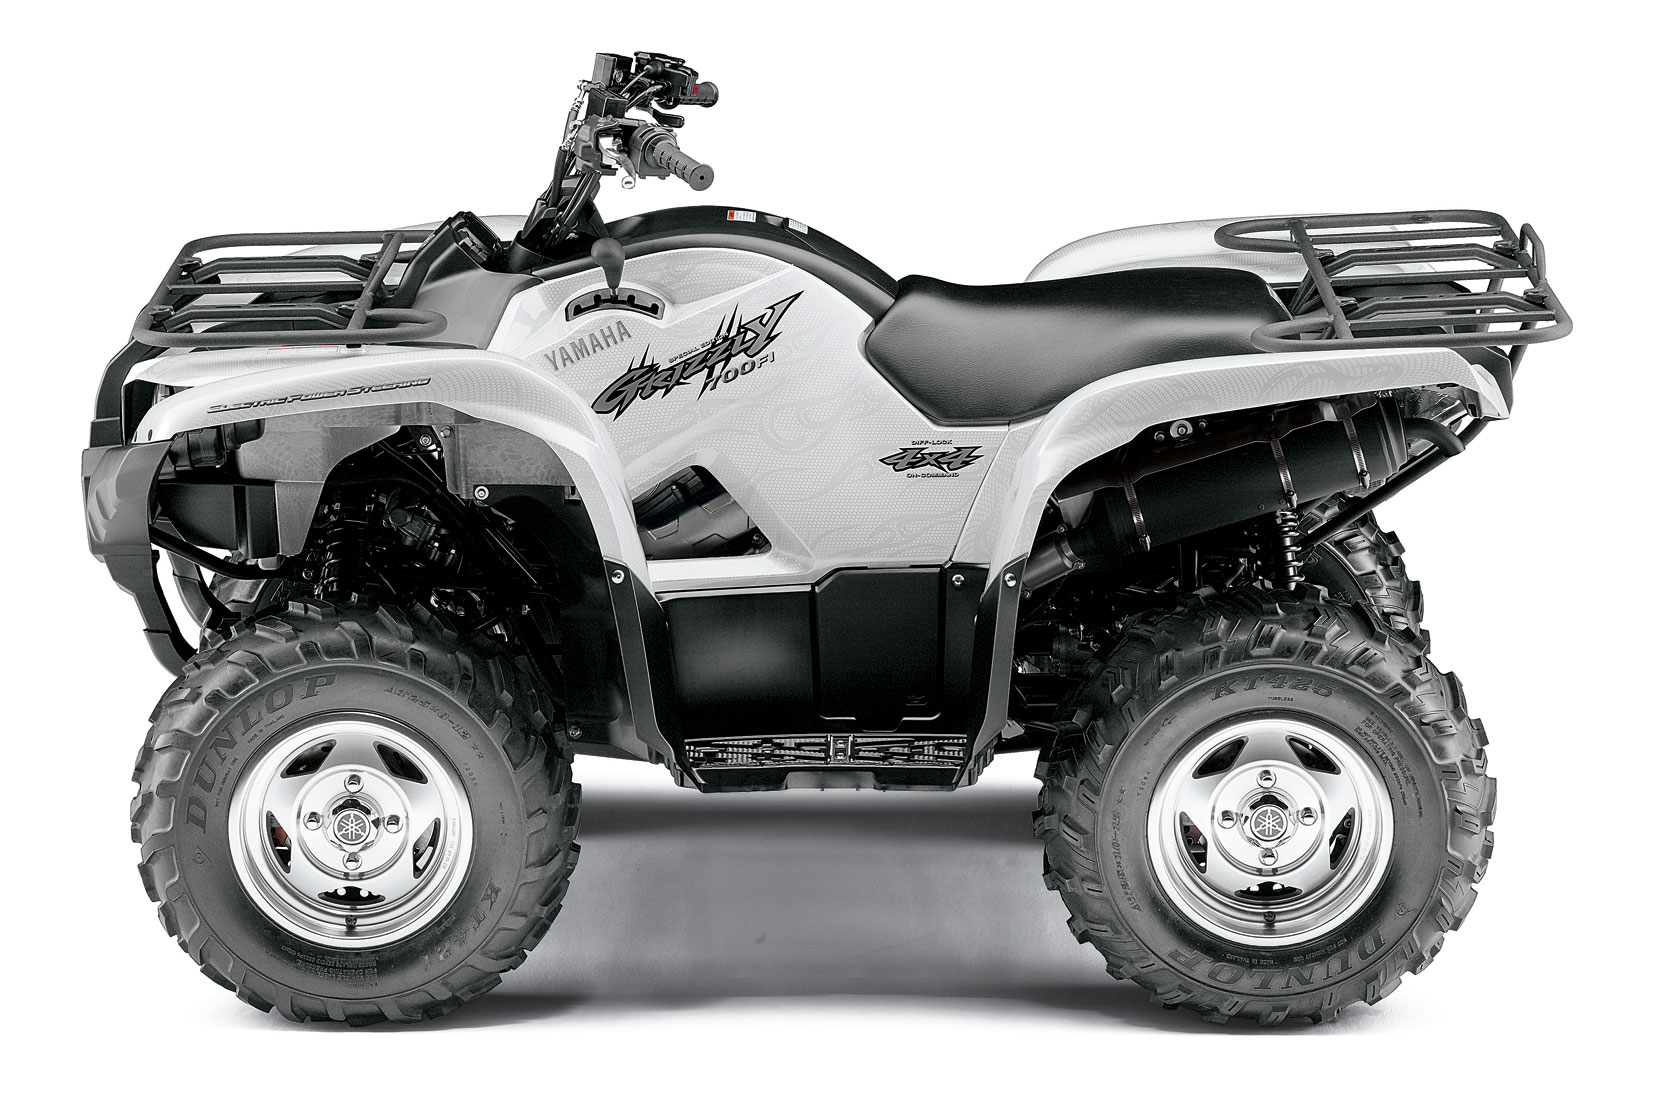 YAMAHA Grizzly 700 FI EPS Special Edition specs - 2009 ...